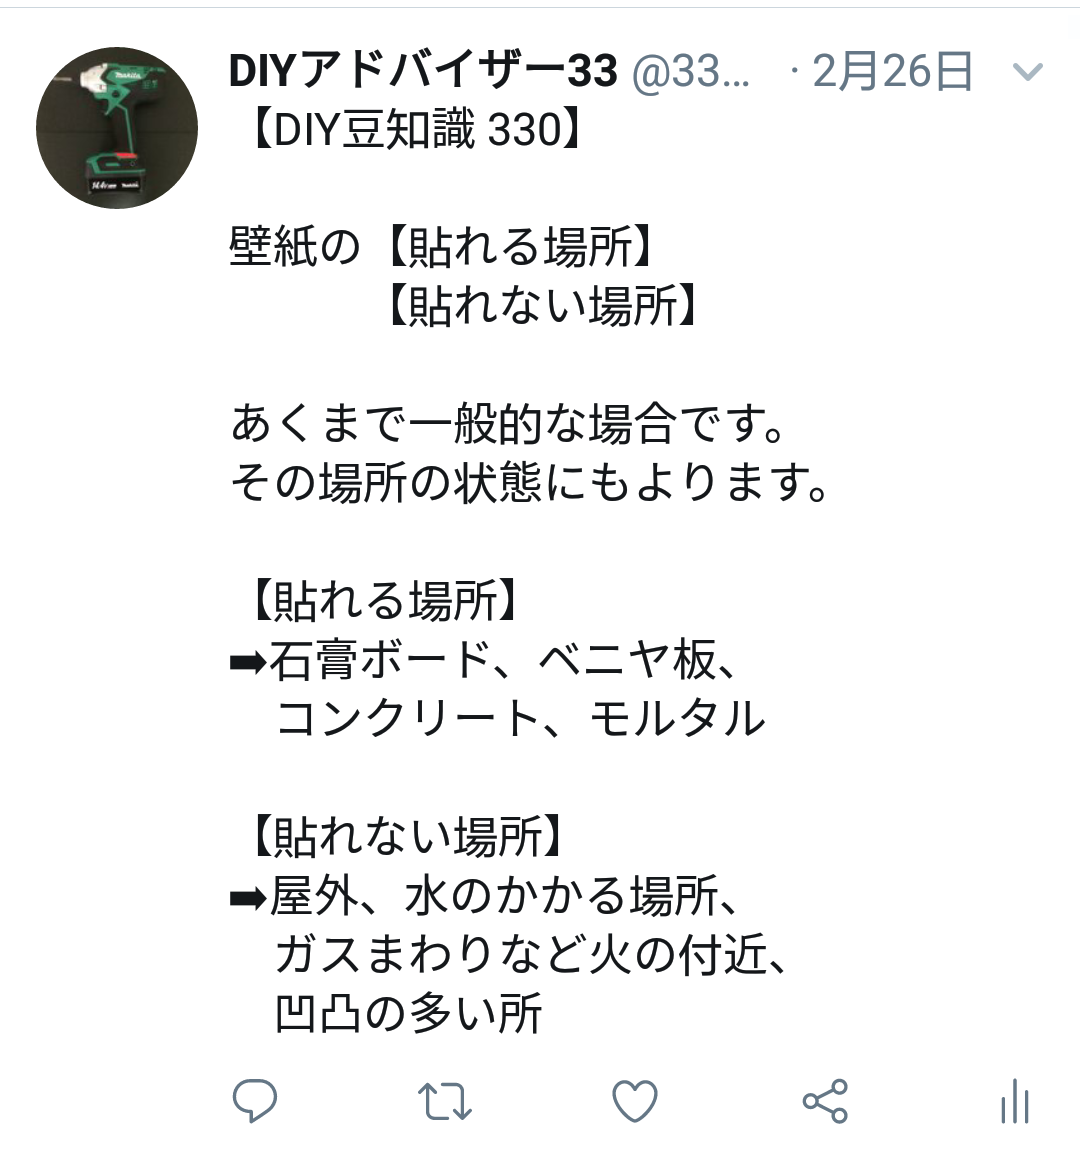 f:id:DIY33:20190410063156p:plain